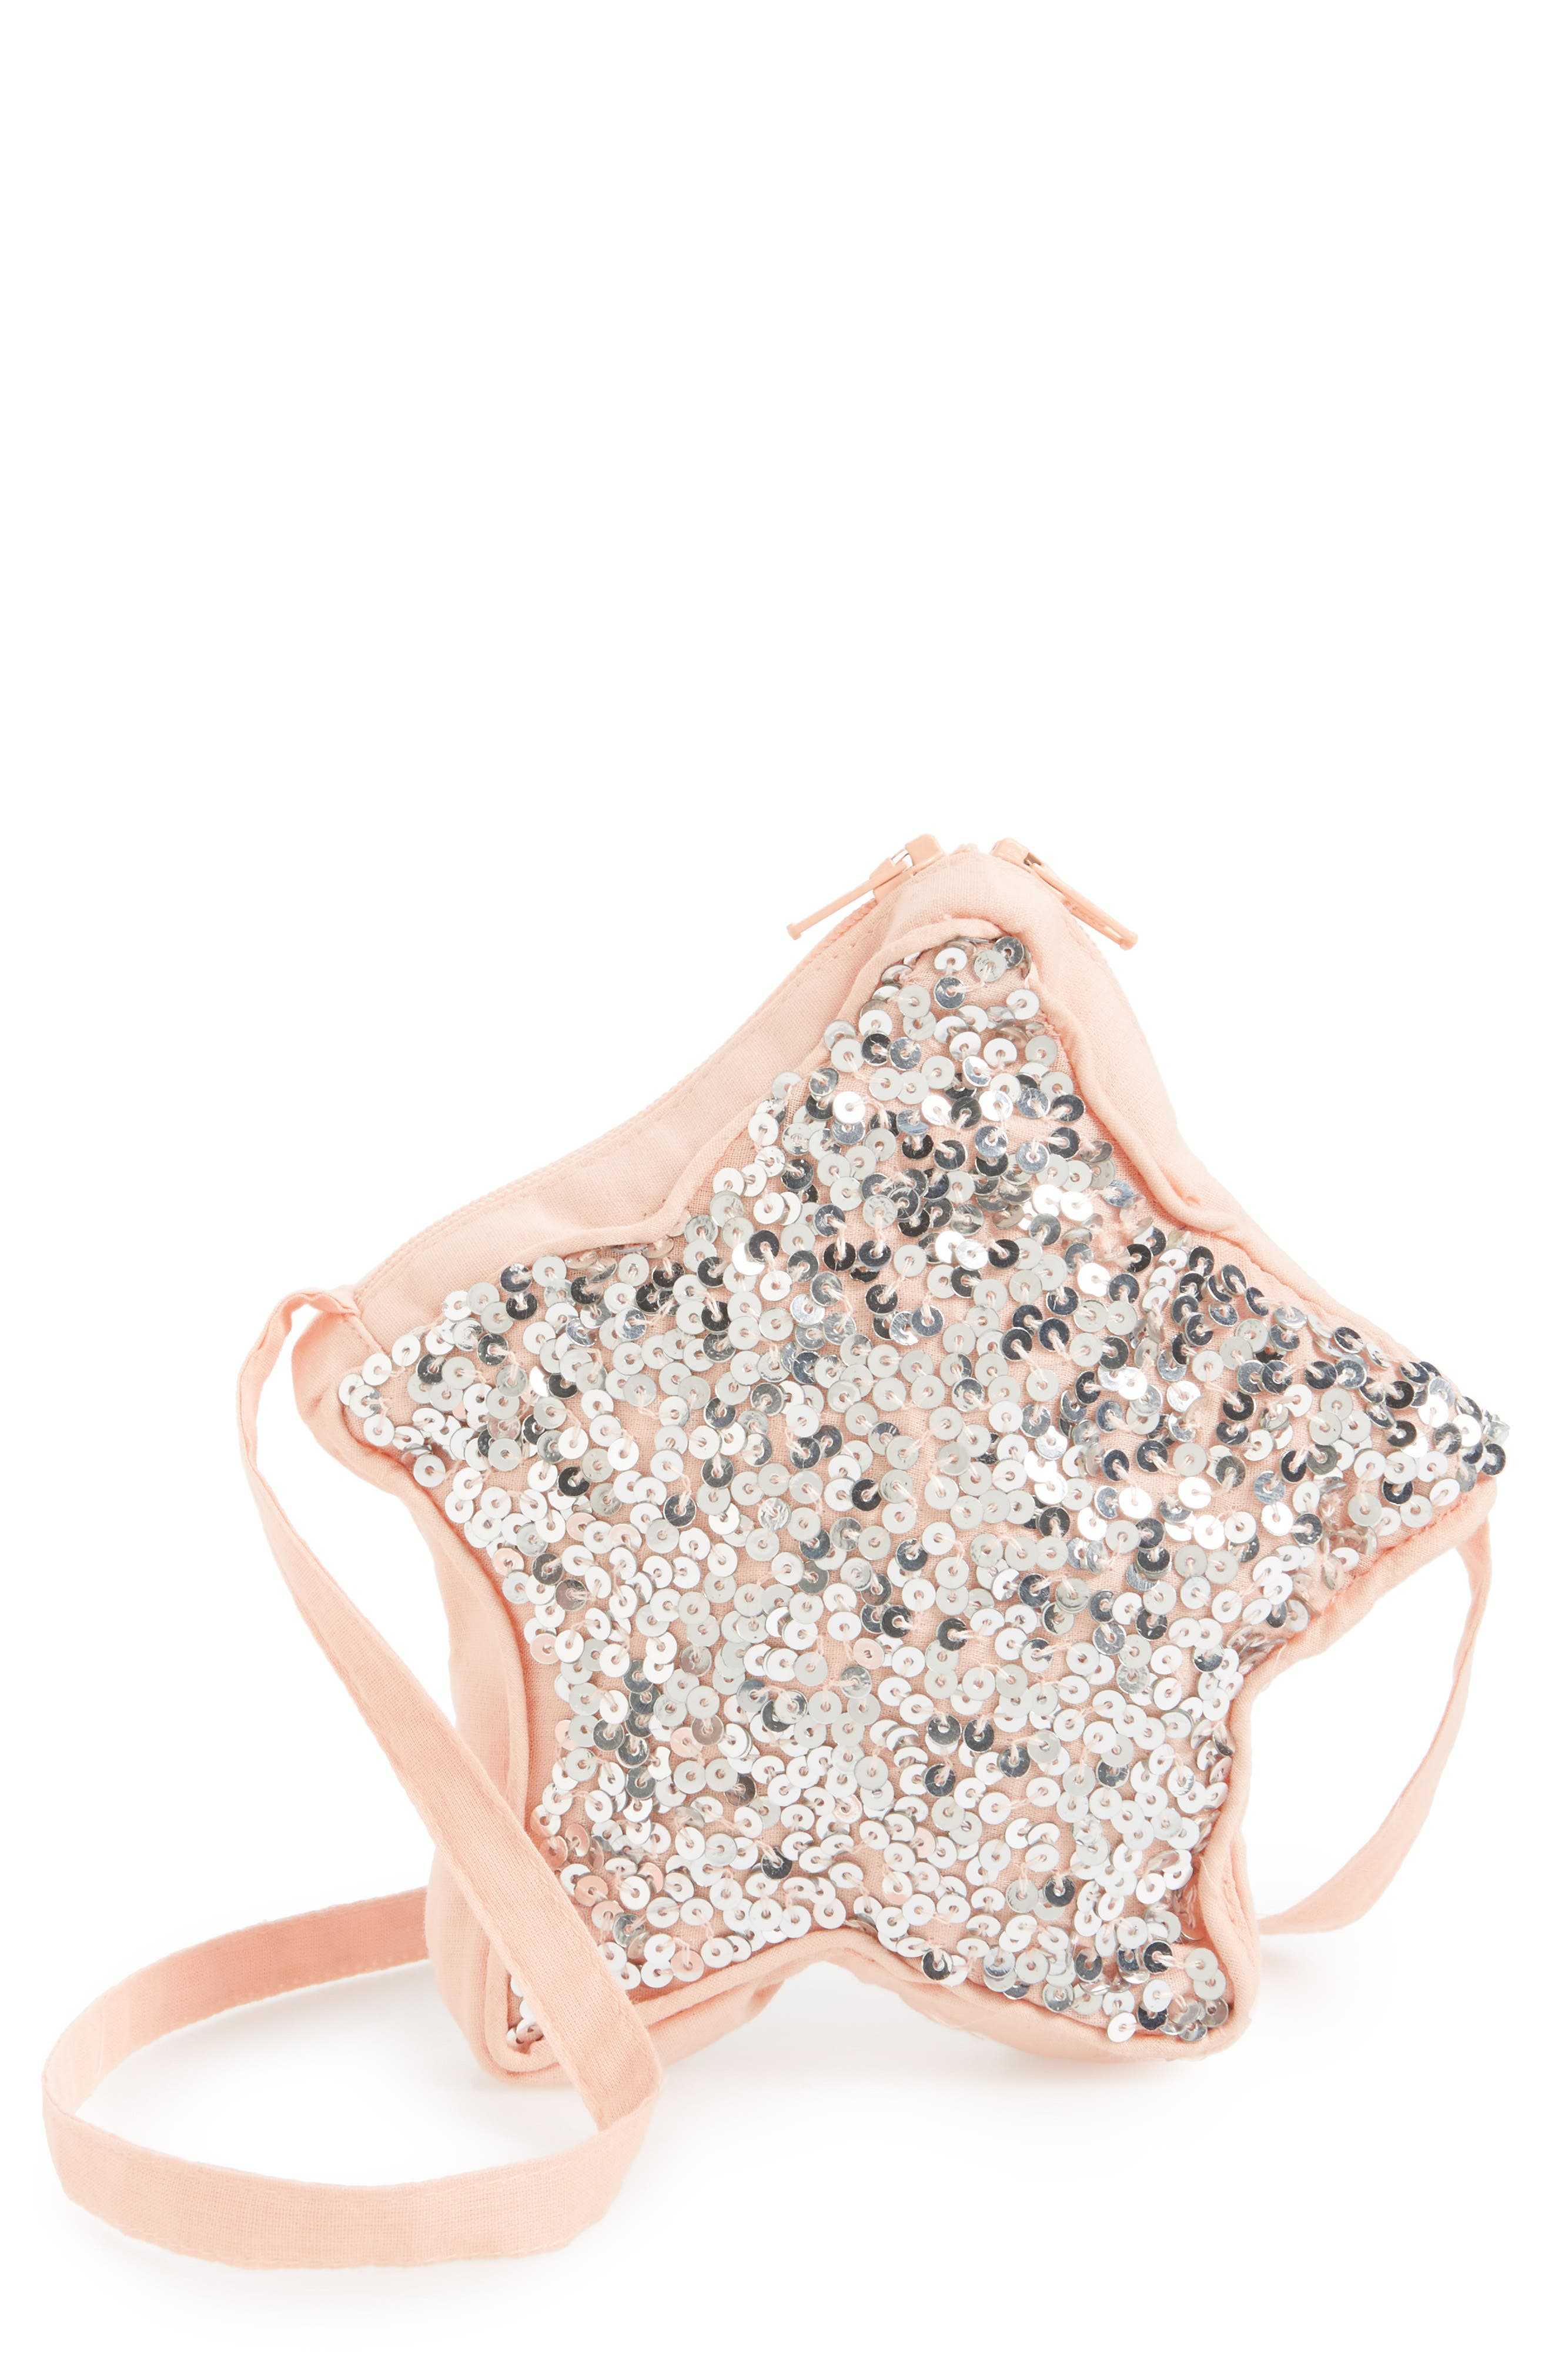 Alternate Image 1 Selected - Wild and Gorgeous Sequin Star Bag (Girls)